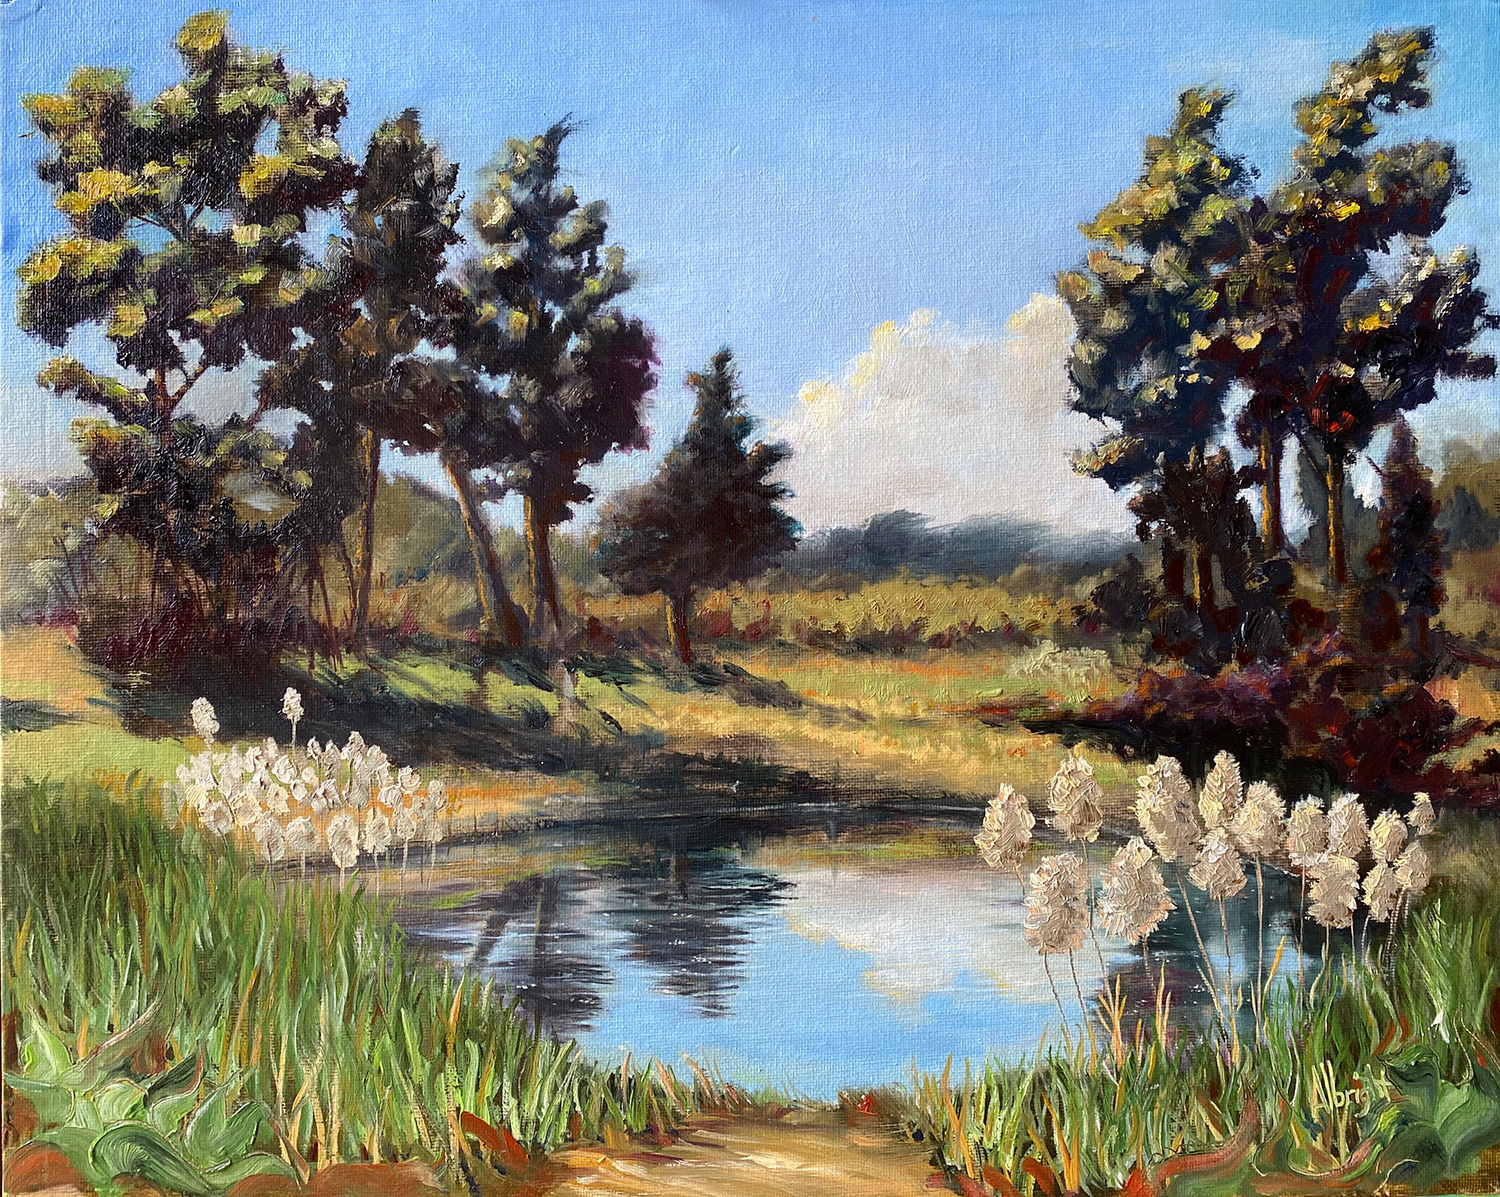 Sam Albright, Pine Pond